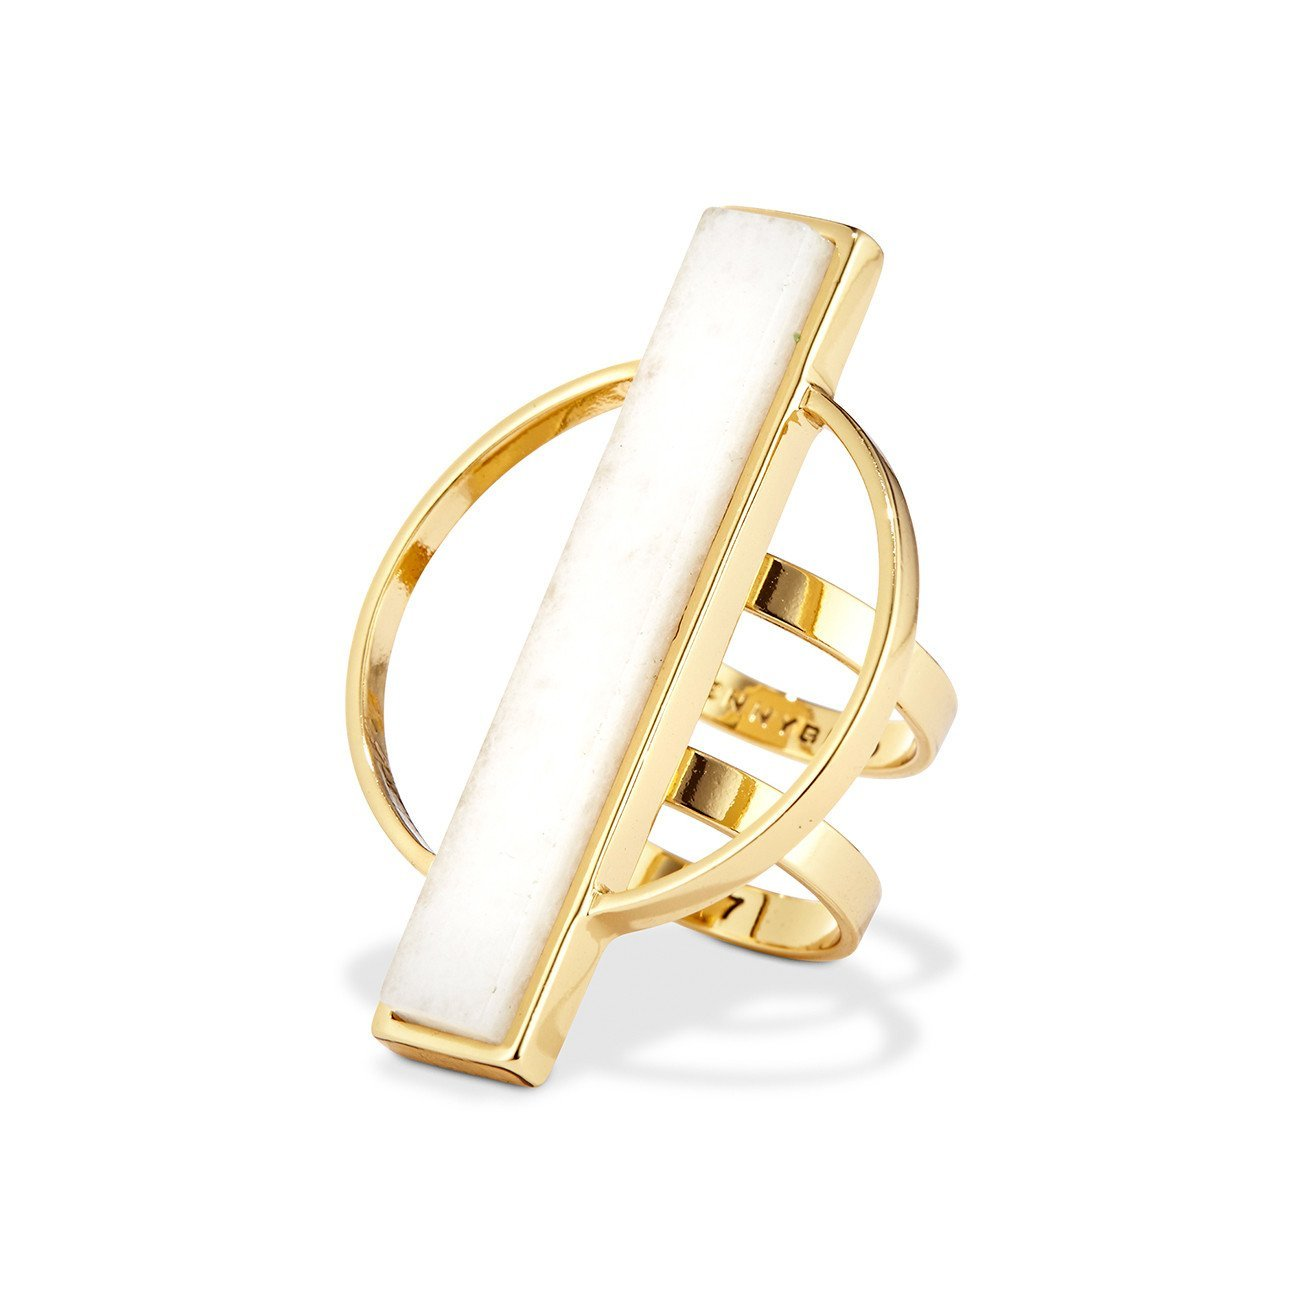 JENNYBIRD - POLLUX RING IN GOLD/WHITE